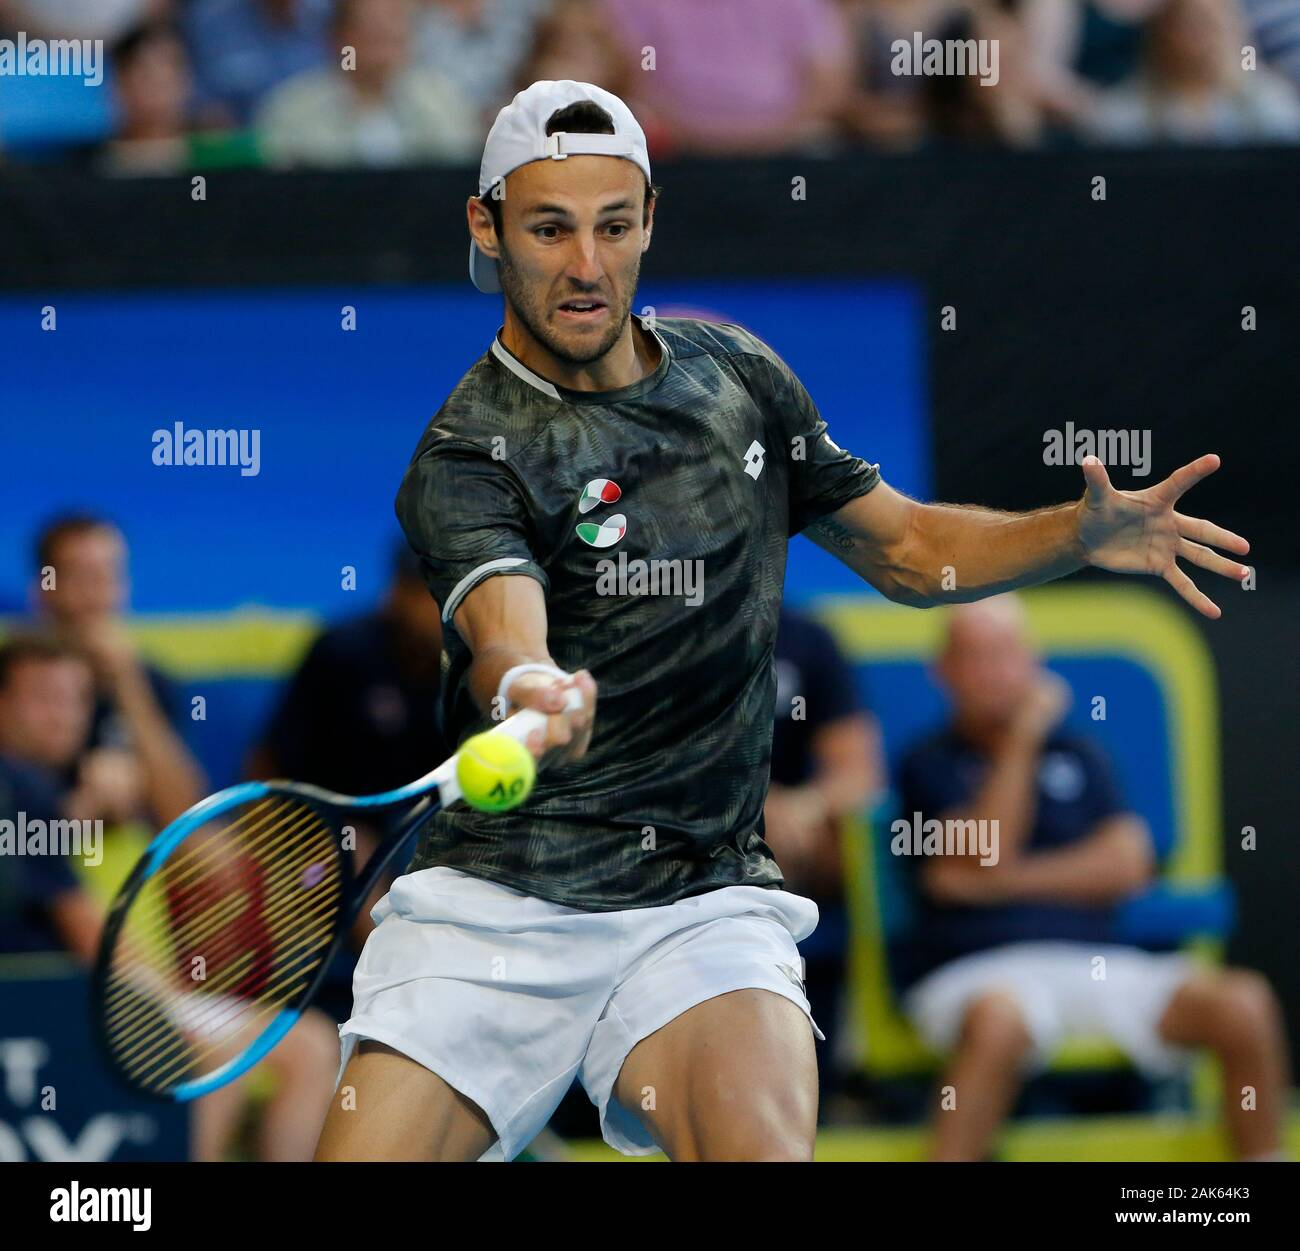 RAC Arena, Perth, Western Australia. 7th Jan, 2020. ATP Cup Australia,  Perth, Day 5; USA versus Italy; Stefano Travaglia of Italy plays a forehand  shot against Taylor Fritz of the USA -